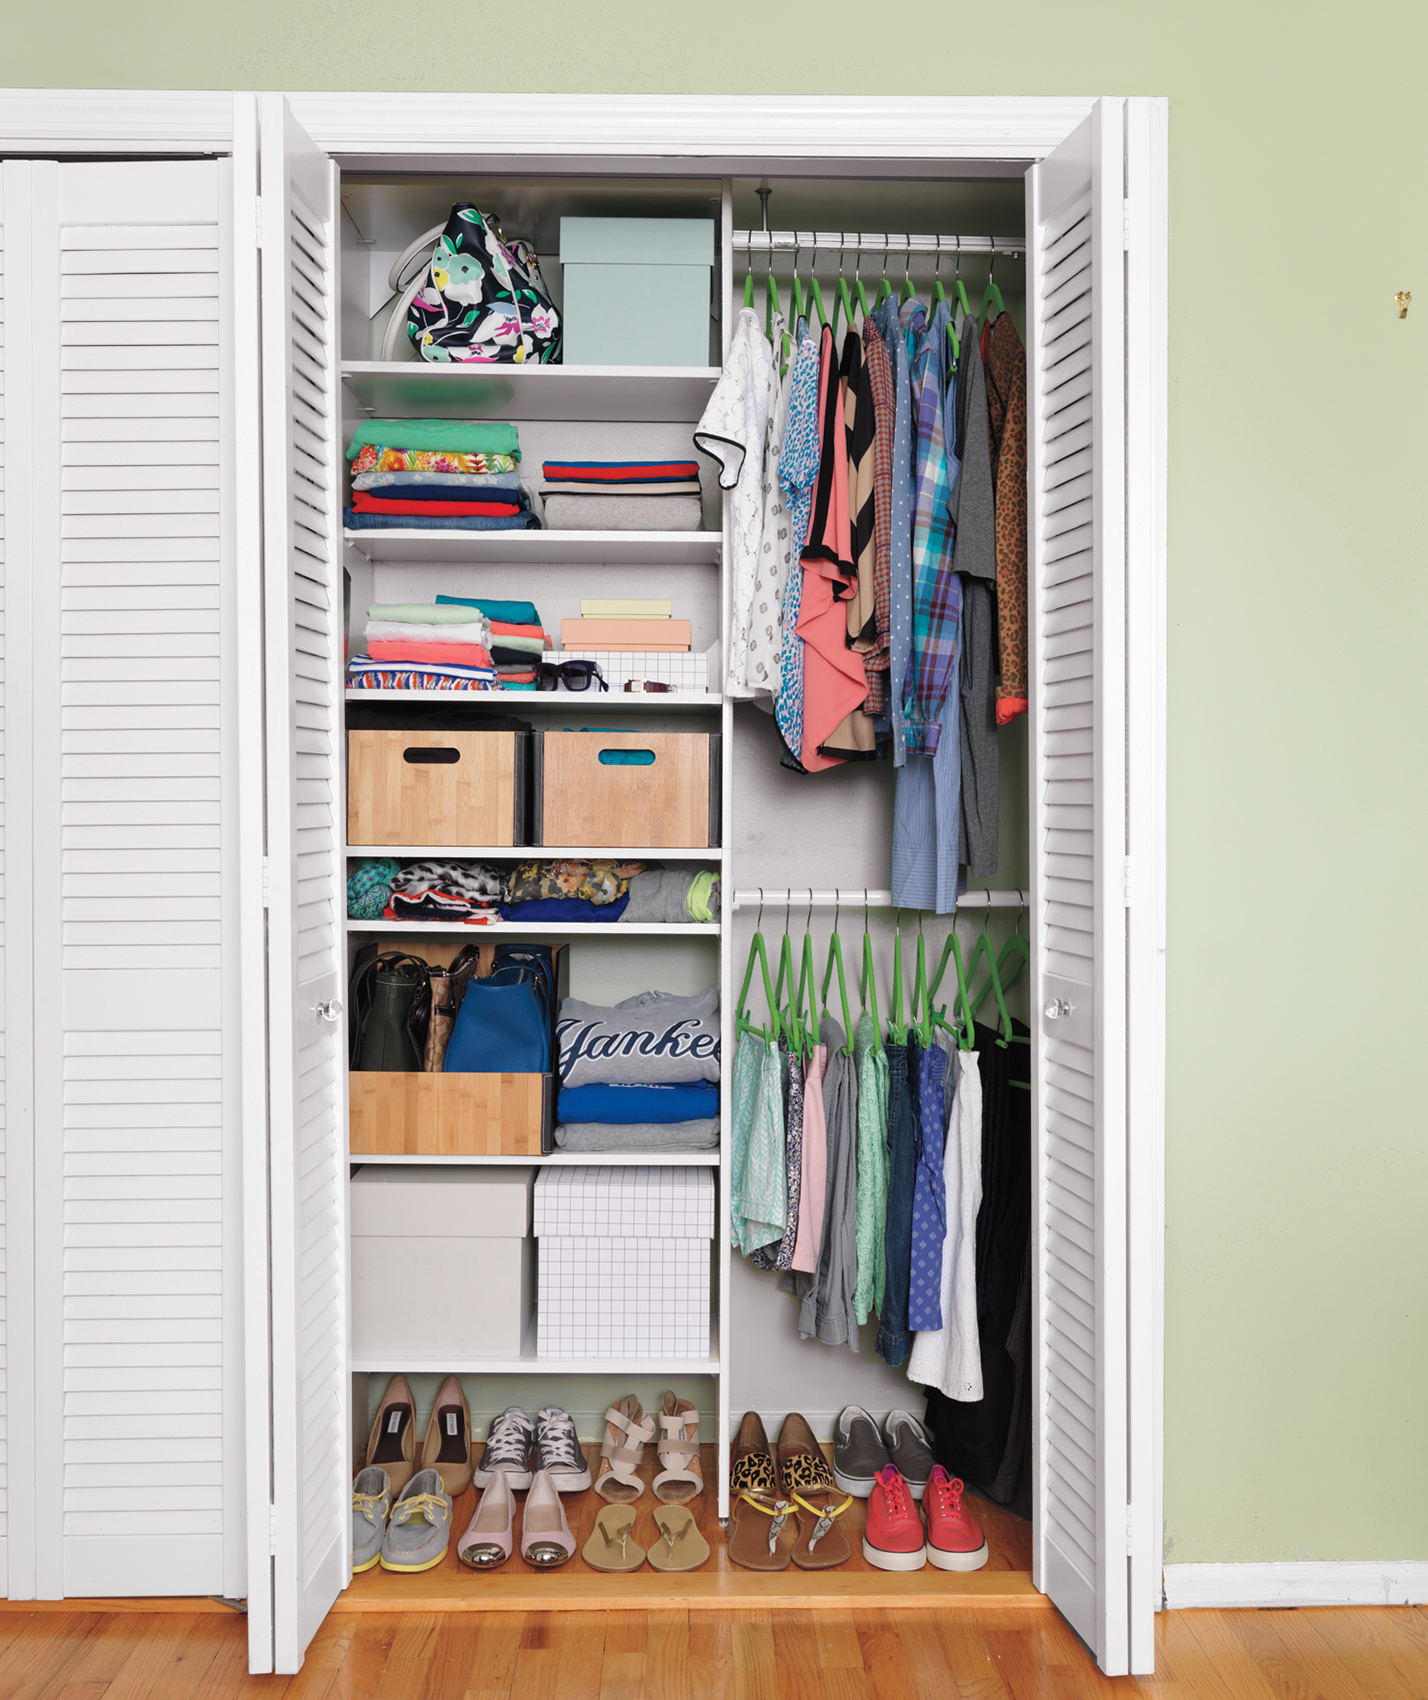 Etonnant Closet With All Green Hangers